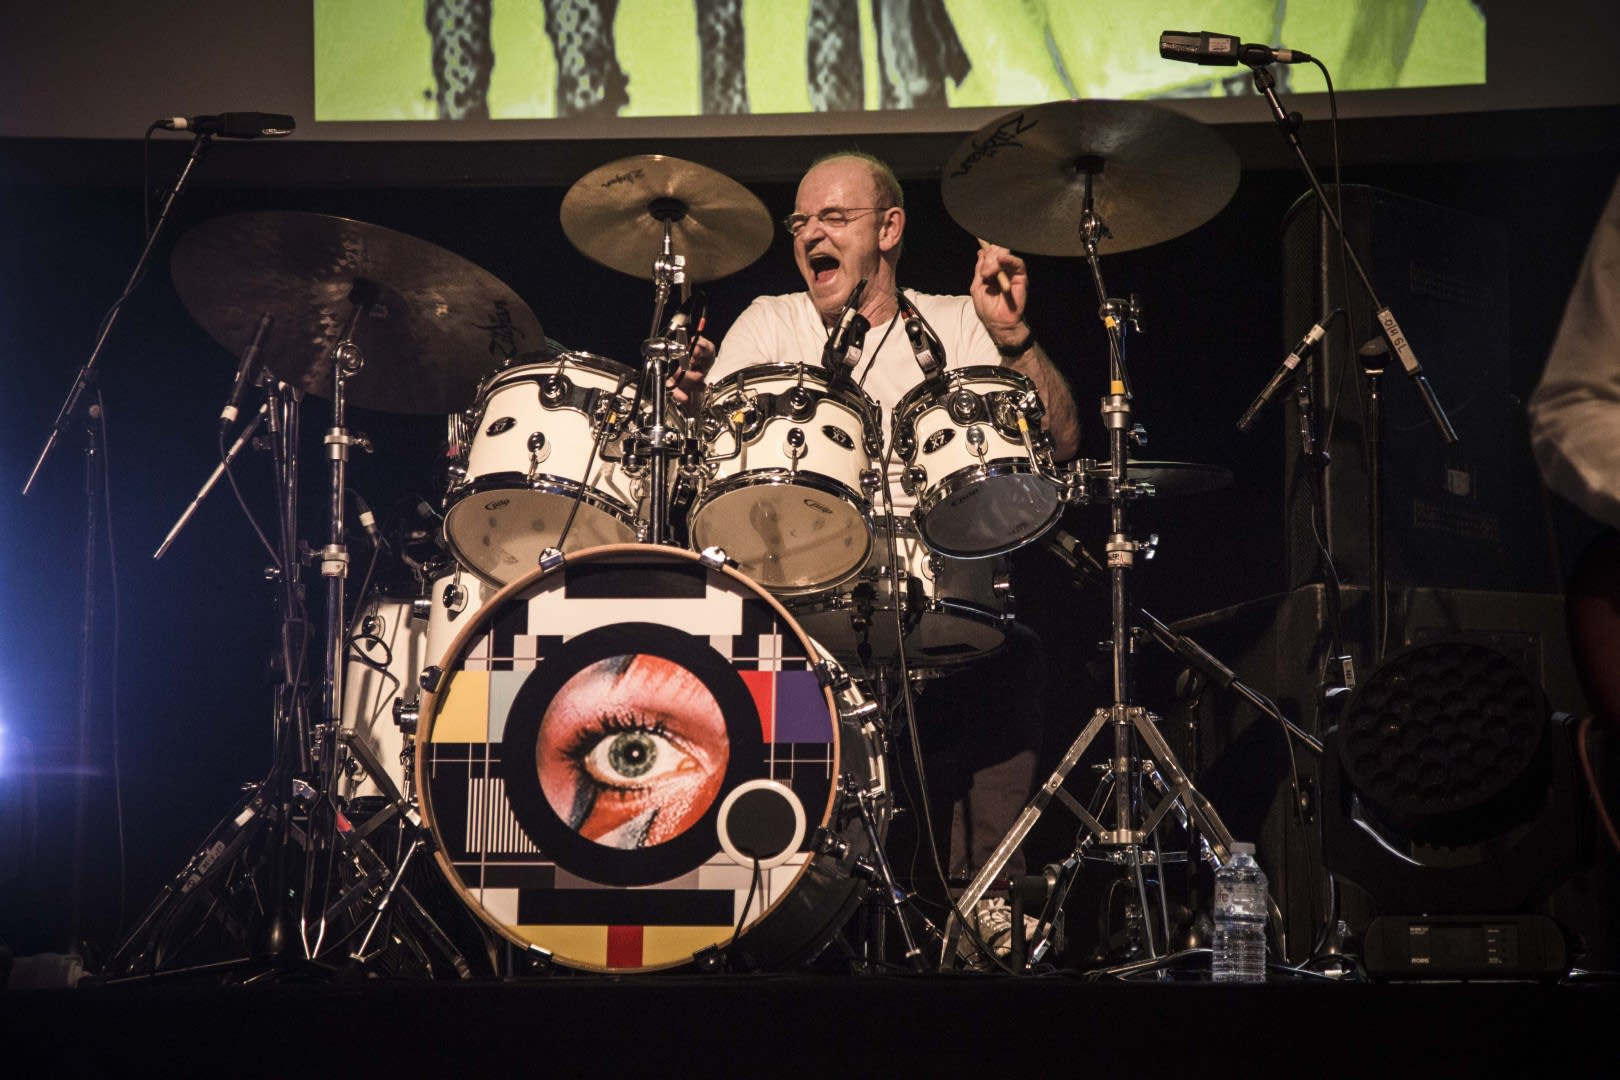 Woody Woodmansey On Drums